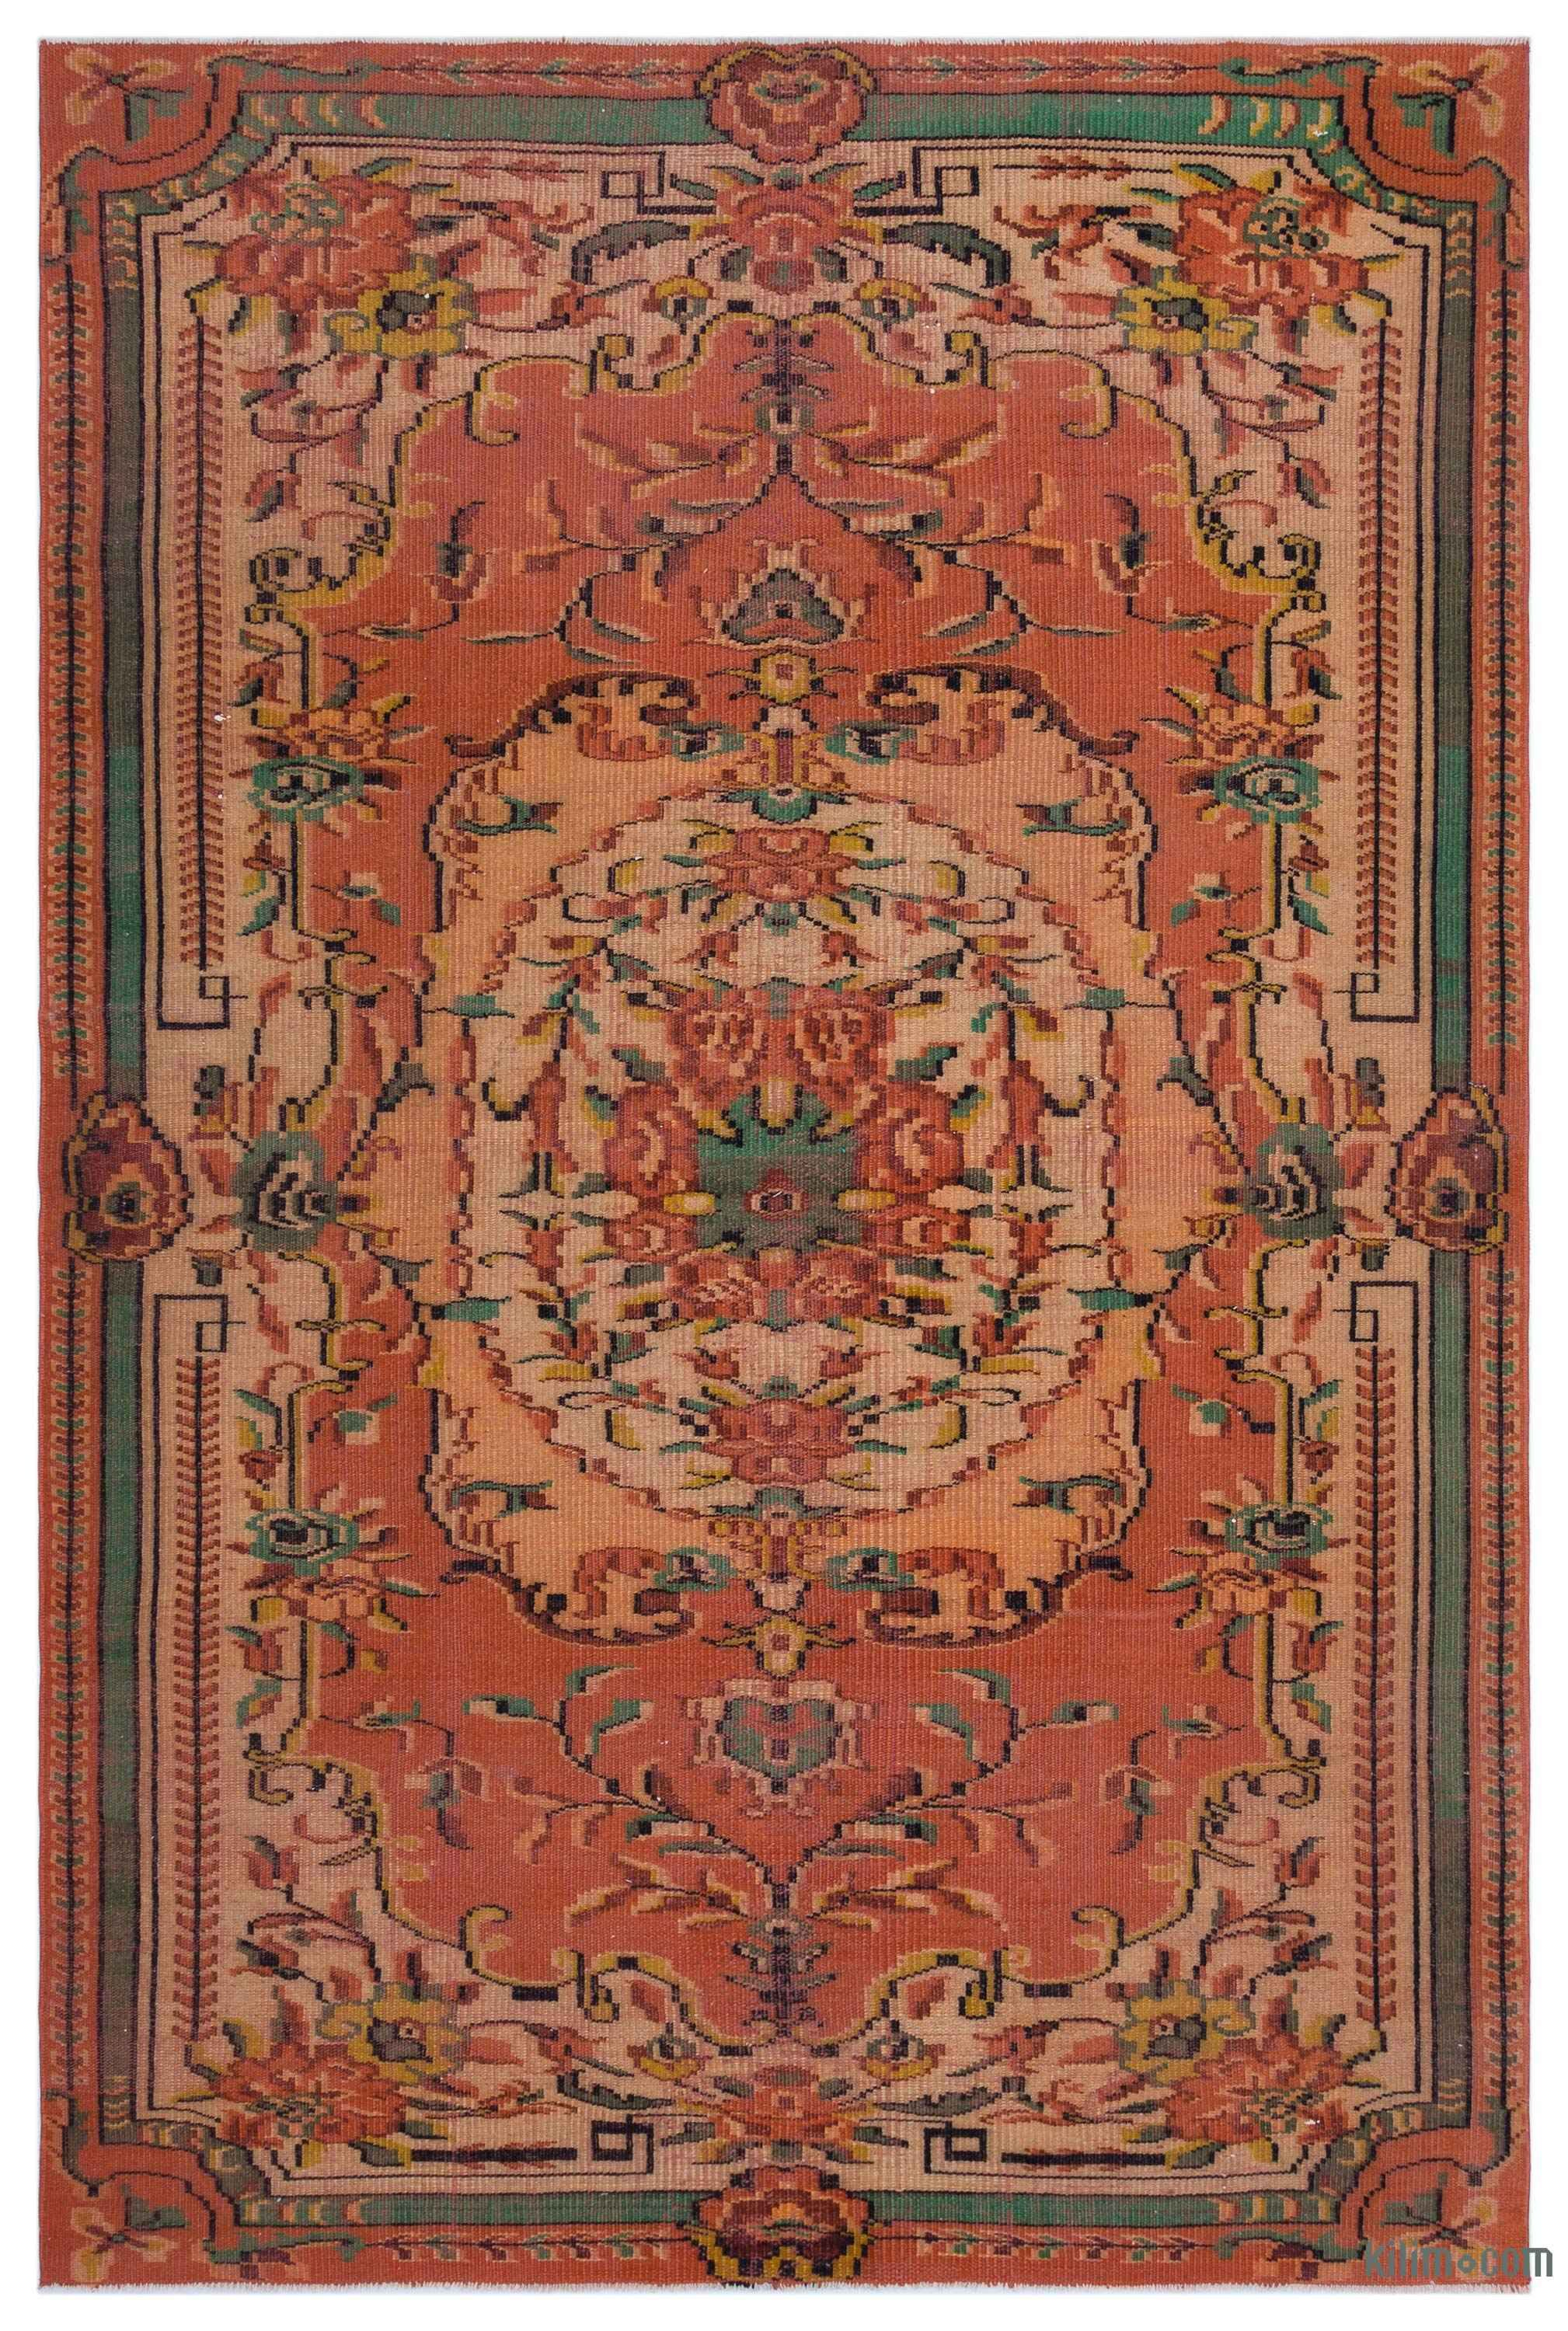 Pin On Vintage Hand Knotted Rugs